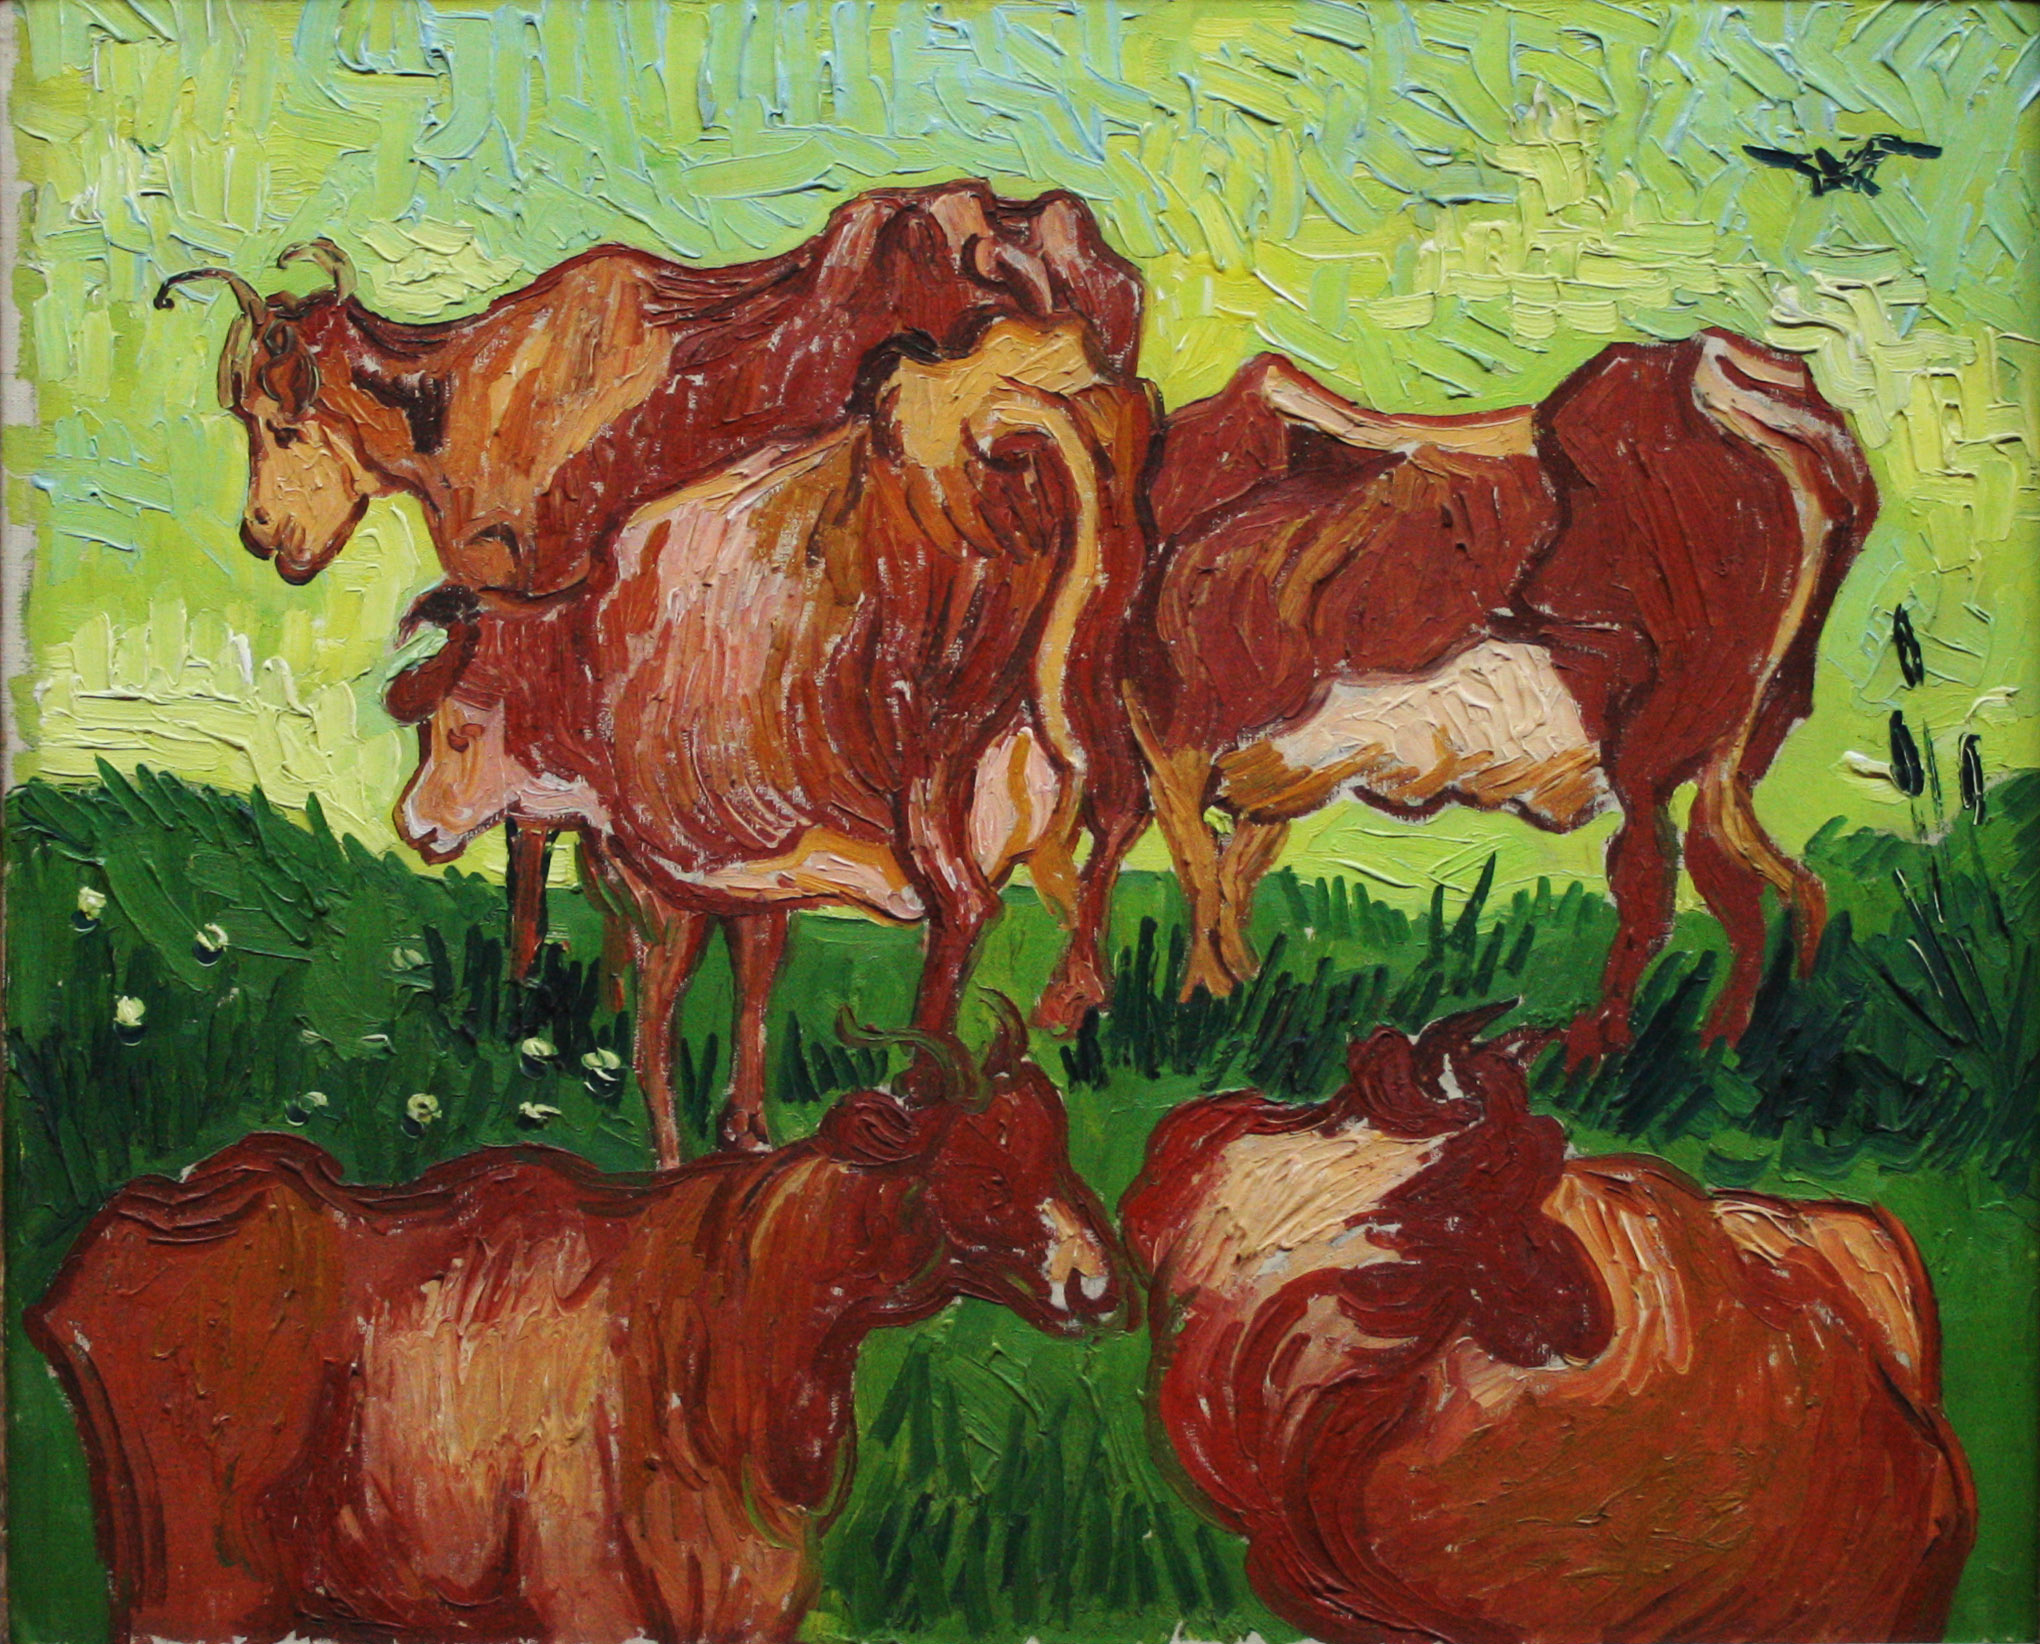 http://upload.wikimedia.org/wikipedia/commons/c/c5/Les_vaches_Van_Gogh.jpg